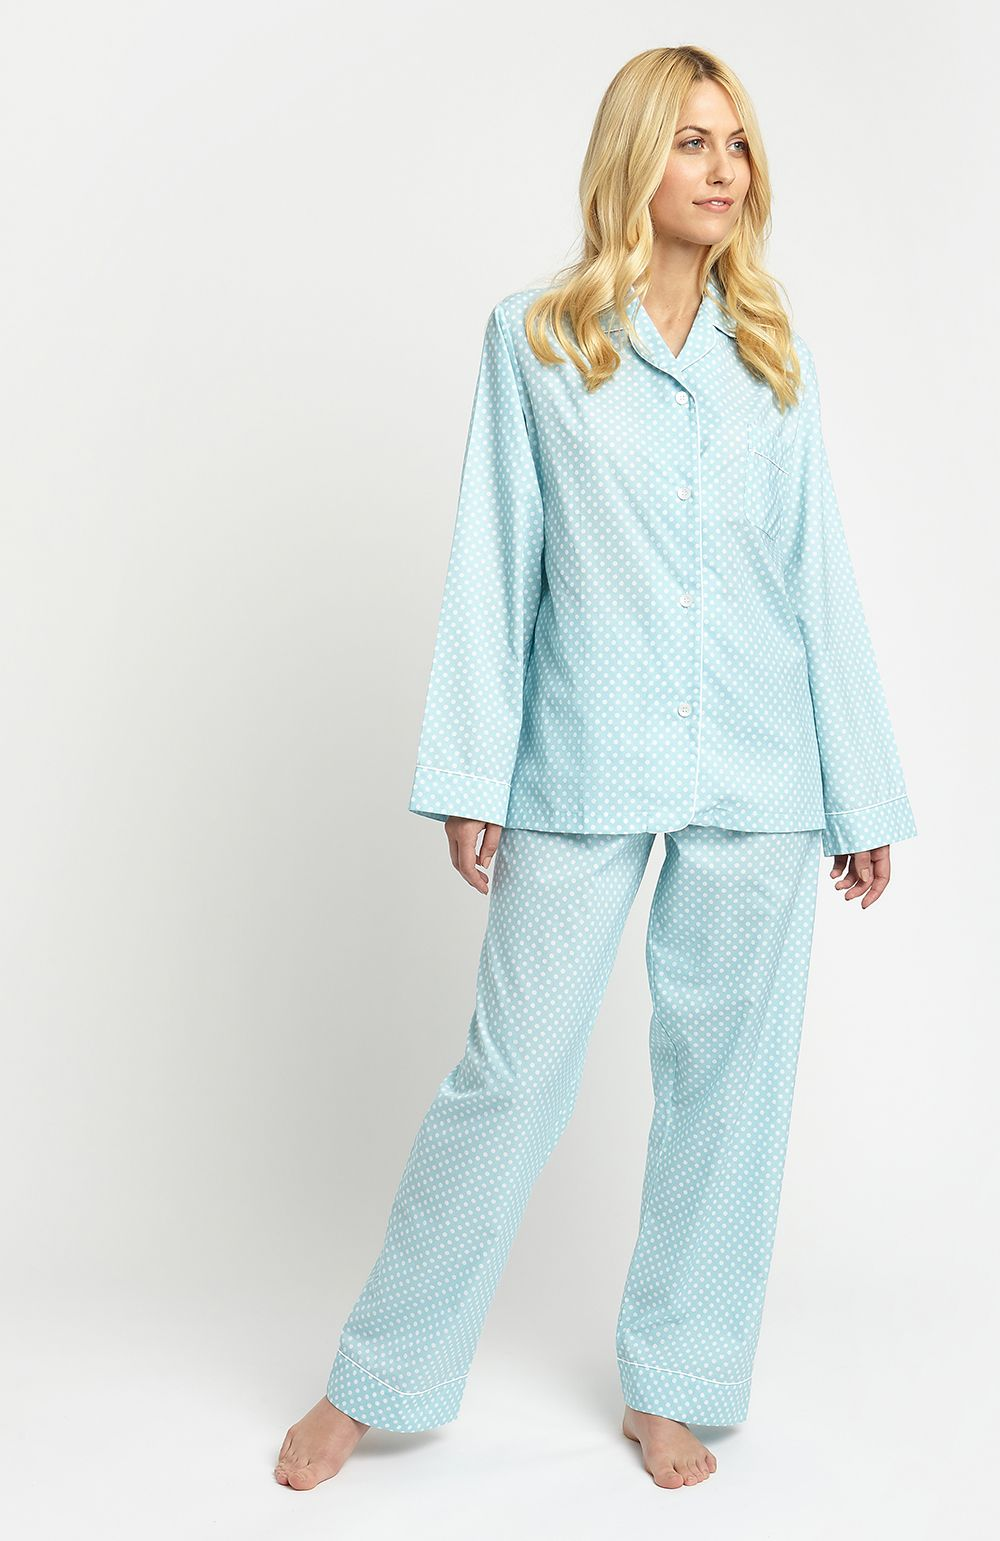 731b65793c Preview of the new luxury Spring Summer nightwear collection perfect for  spring days lounging around the home.